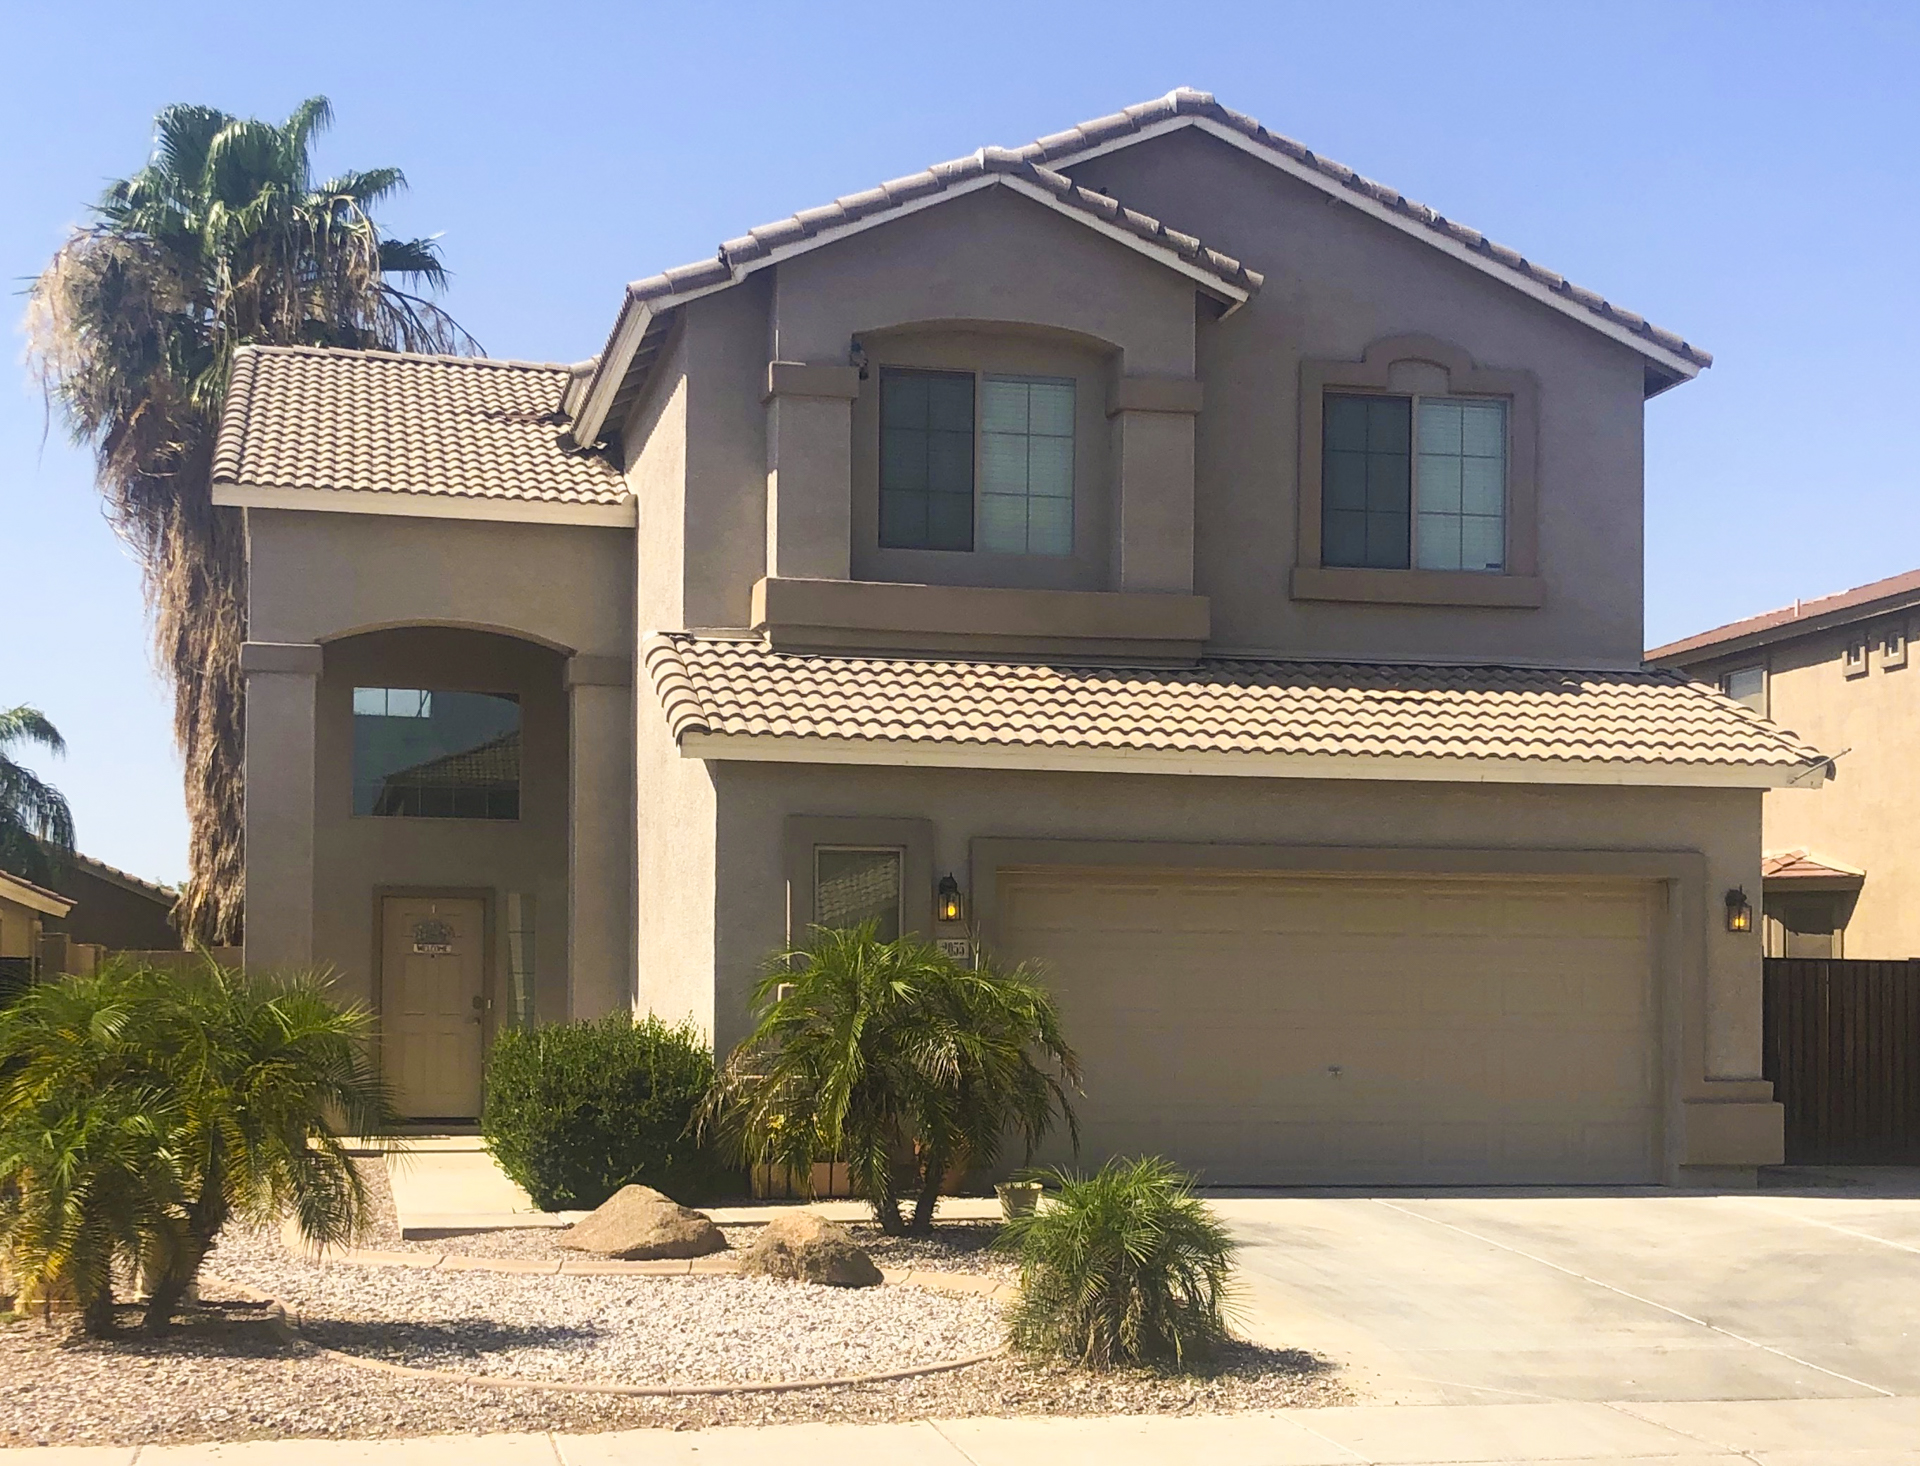 COMING SOON - 2055 W Jasper Butte Dr - Village at San Tan Heights | Amy Jones Group